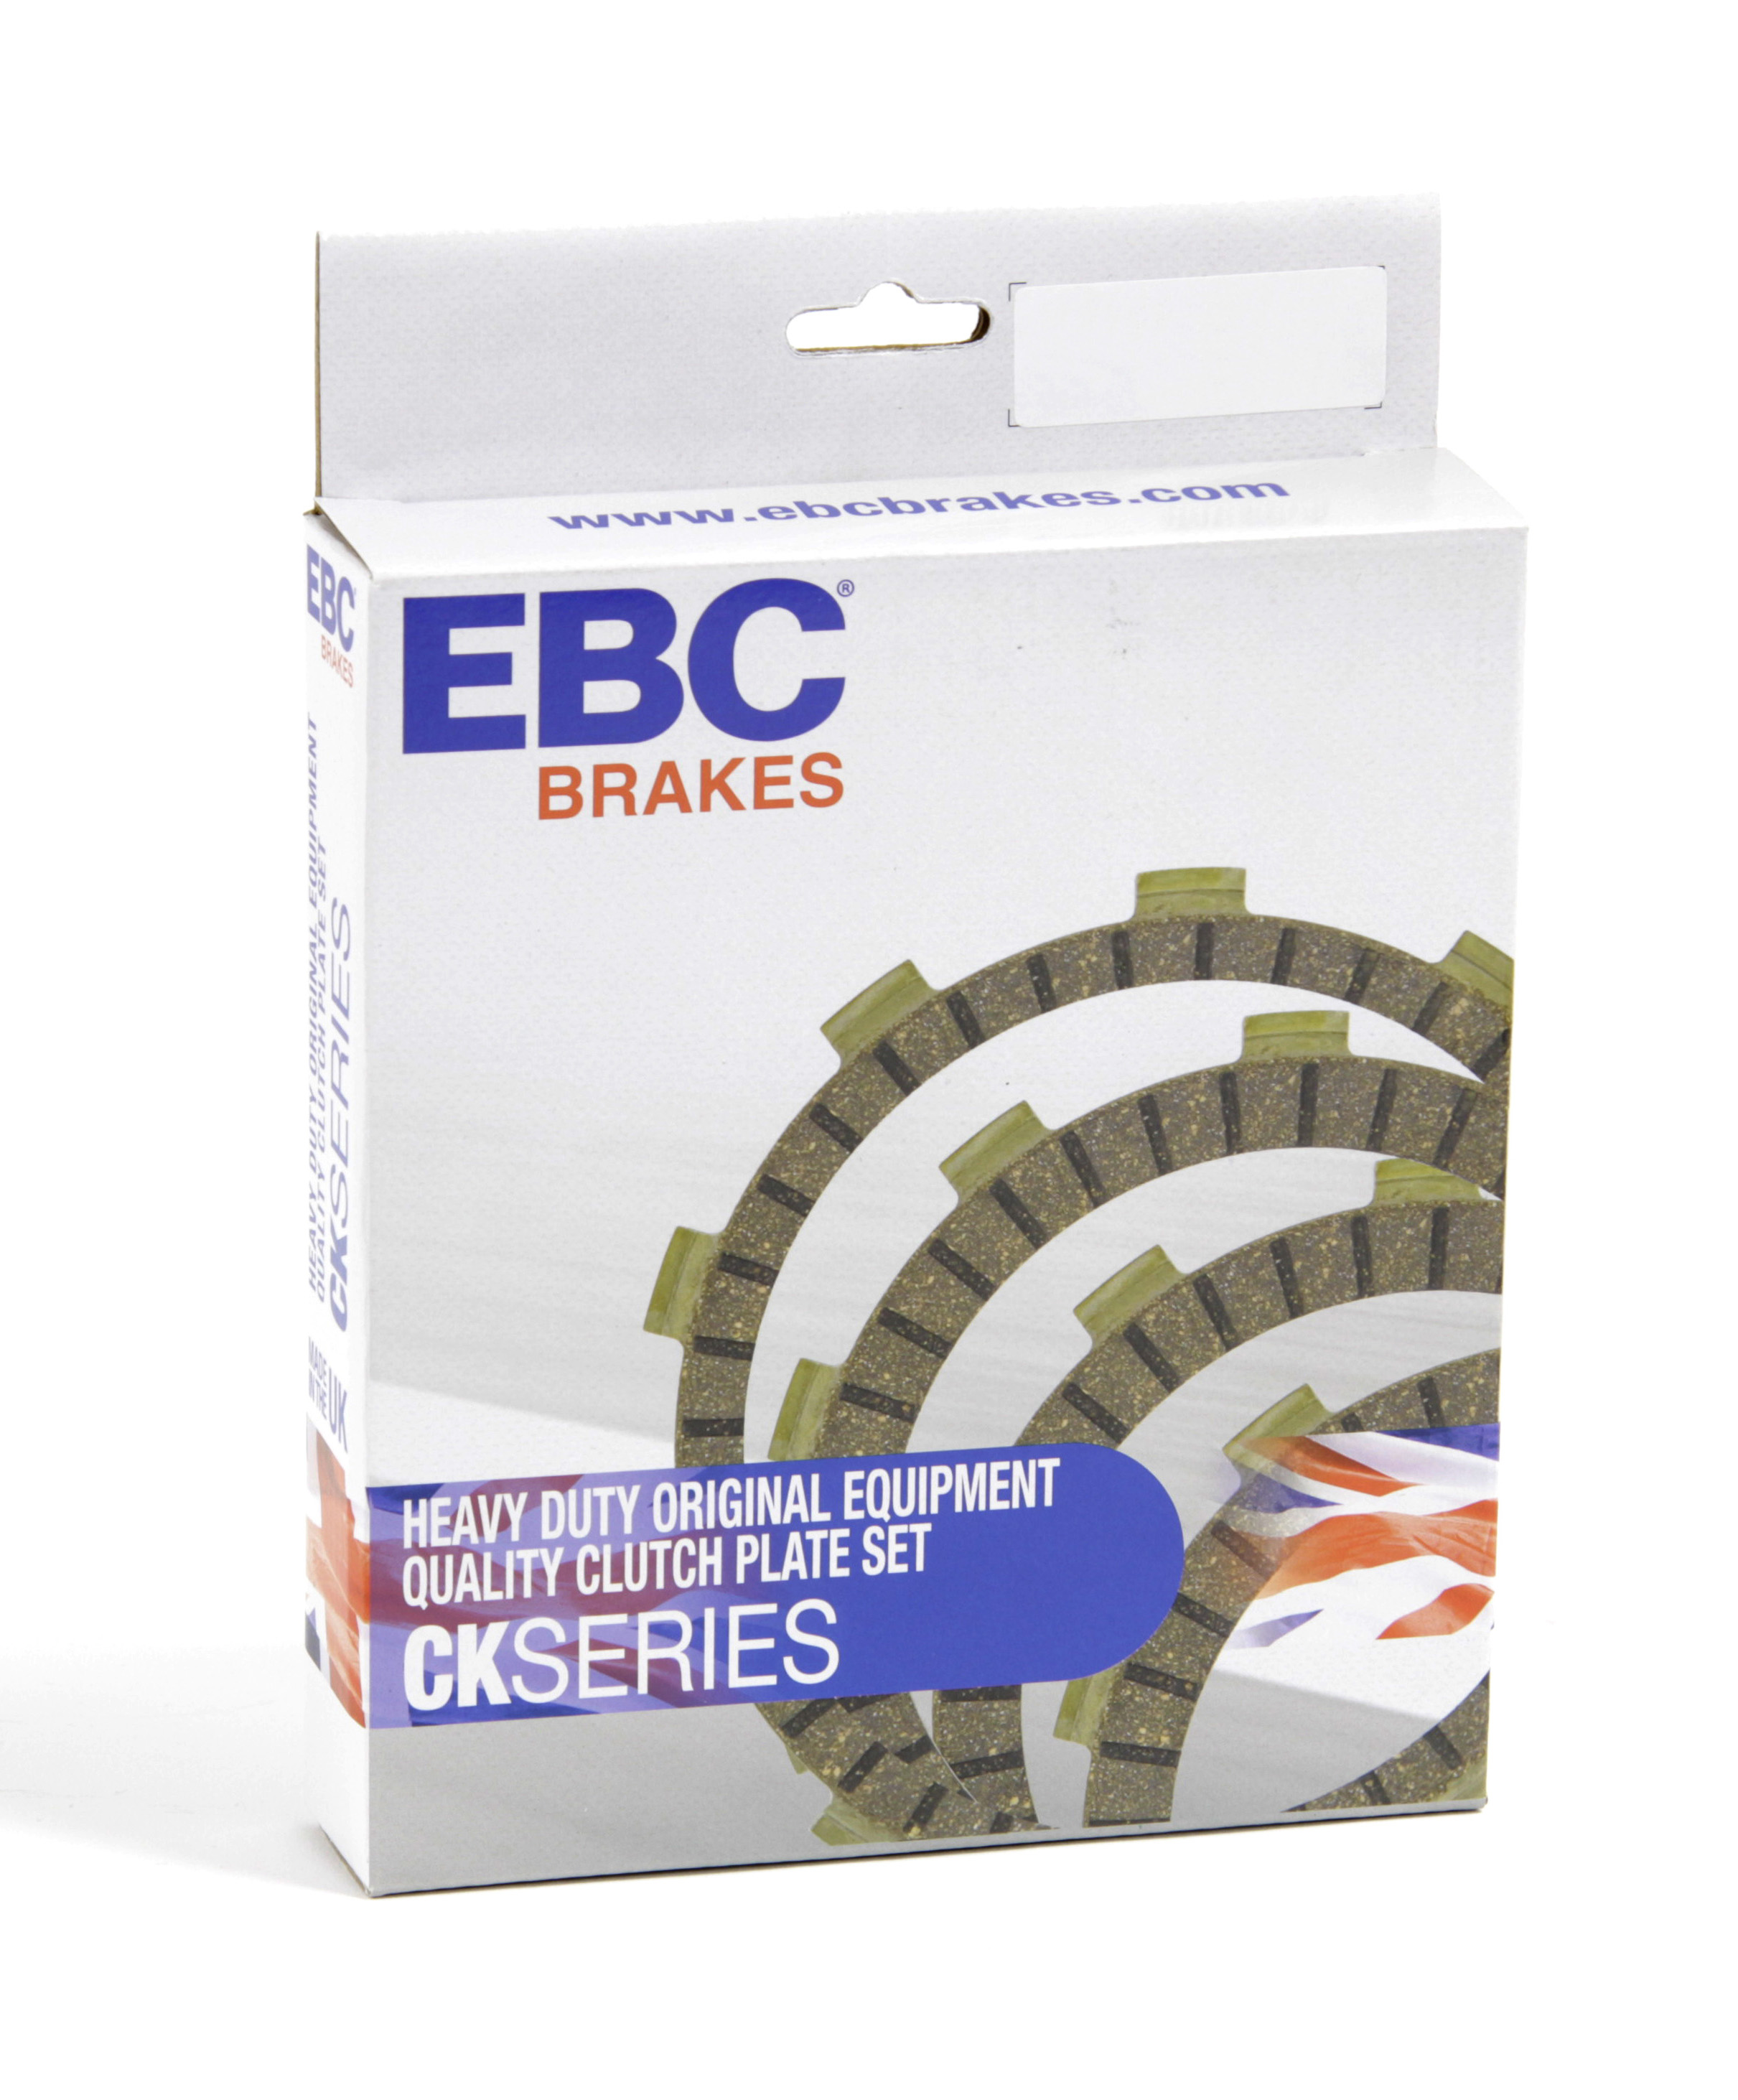 EBC Brakes CK Series Clutch kits